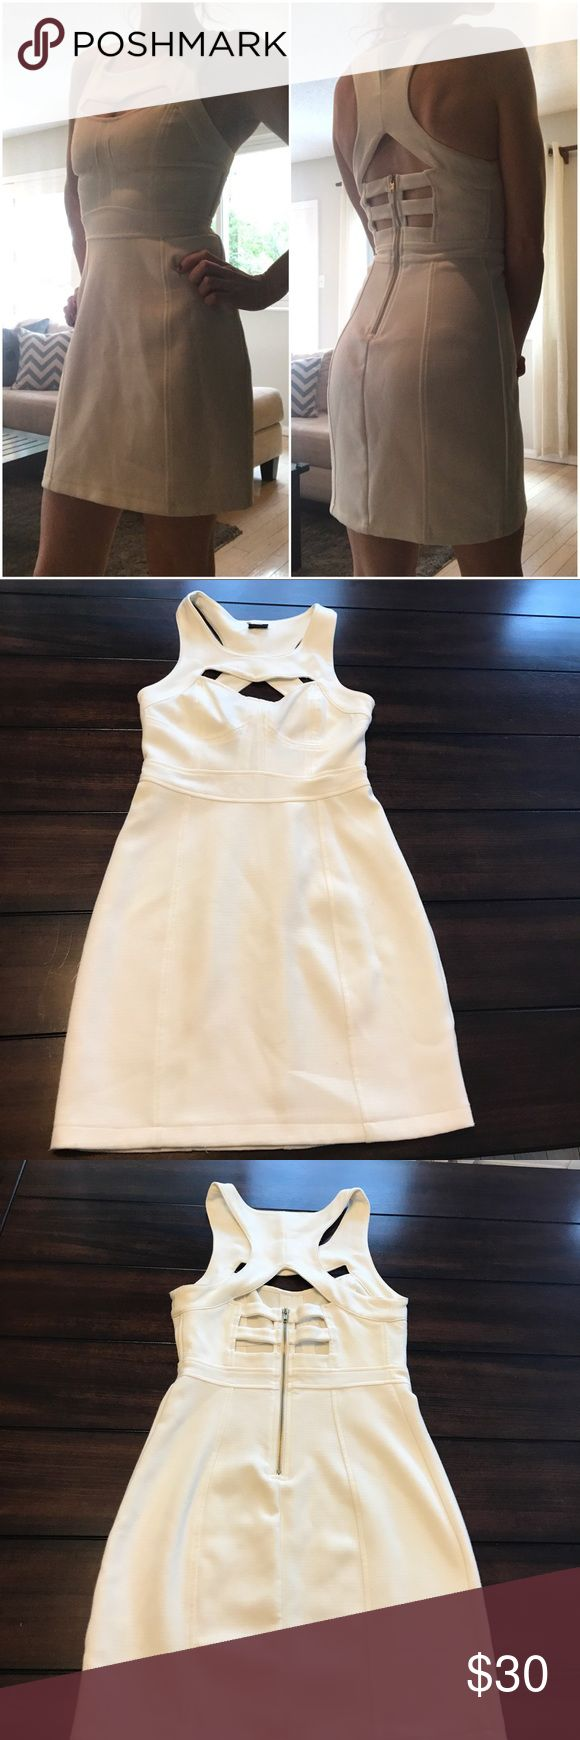 Urban Outfitters cream dress cut out back zip up Adorable sparkle & fade cream mini dress size 4 from urban outfitters. Gold tone zip up in back, cut outs in back. Really high quality material and well made. Very soft. Worn a couple times but in good condition. It is cream so there is 2 very light marks on the dress front side. I put a picture of both but they're hard to notice and could be bleached or washed/dry cleaned out. I LOVE this dress it's amazing just have nowhere to wear it lol I…